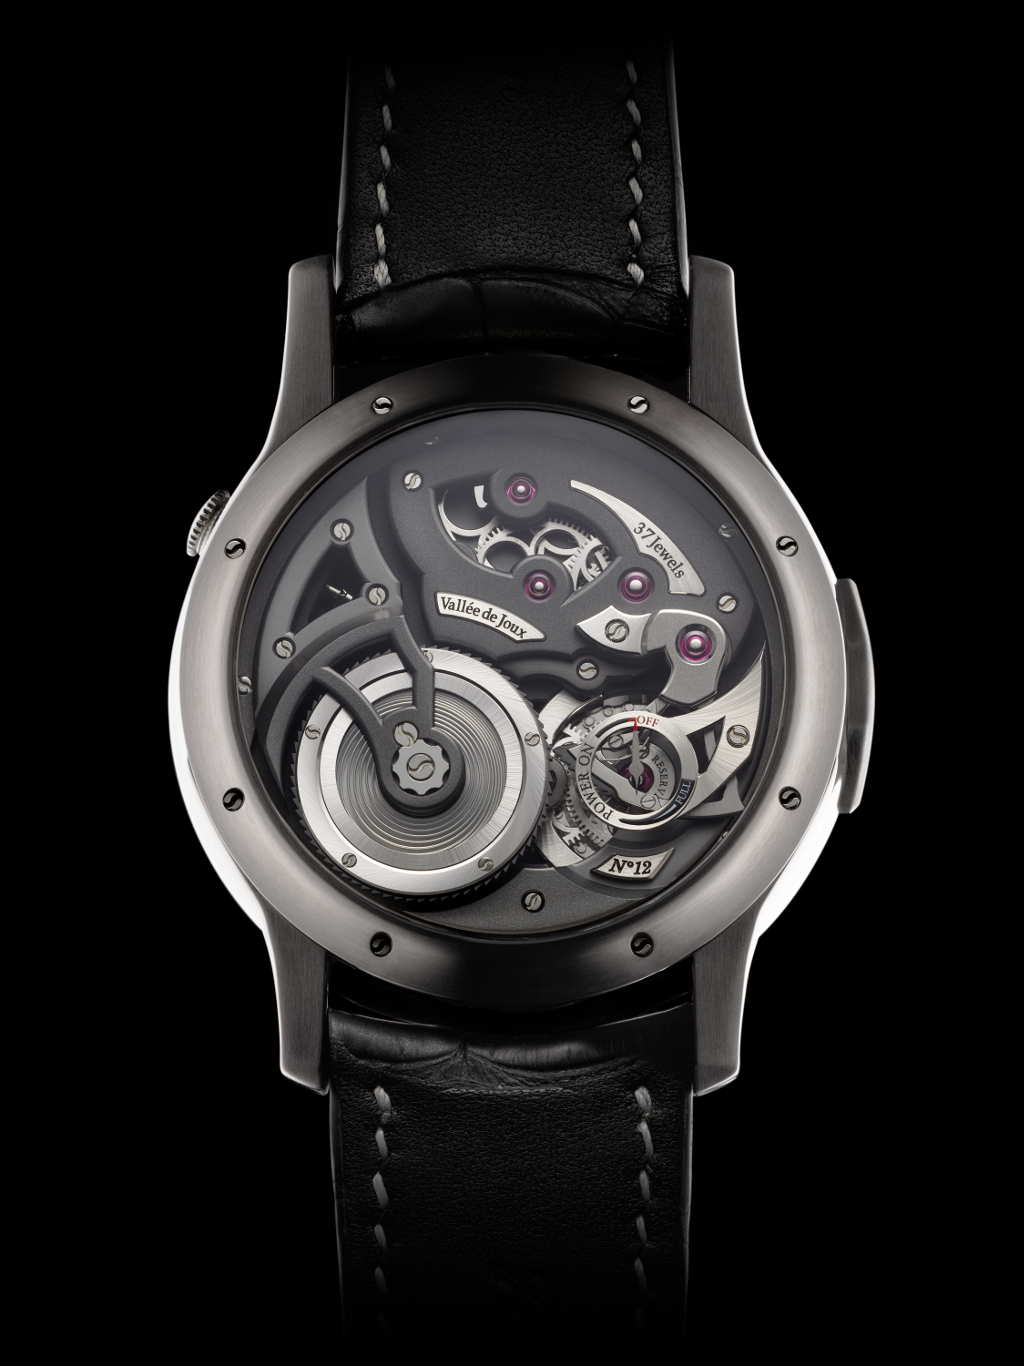 Romain_Gauthier_Logical_One_natural_titanium_clous_de_Paris_dial-2.jpg